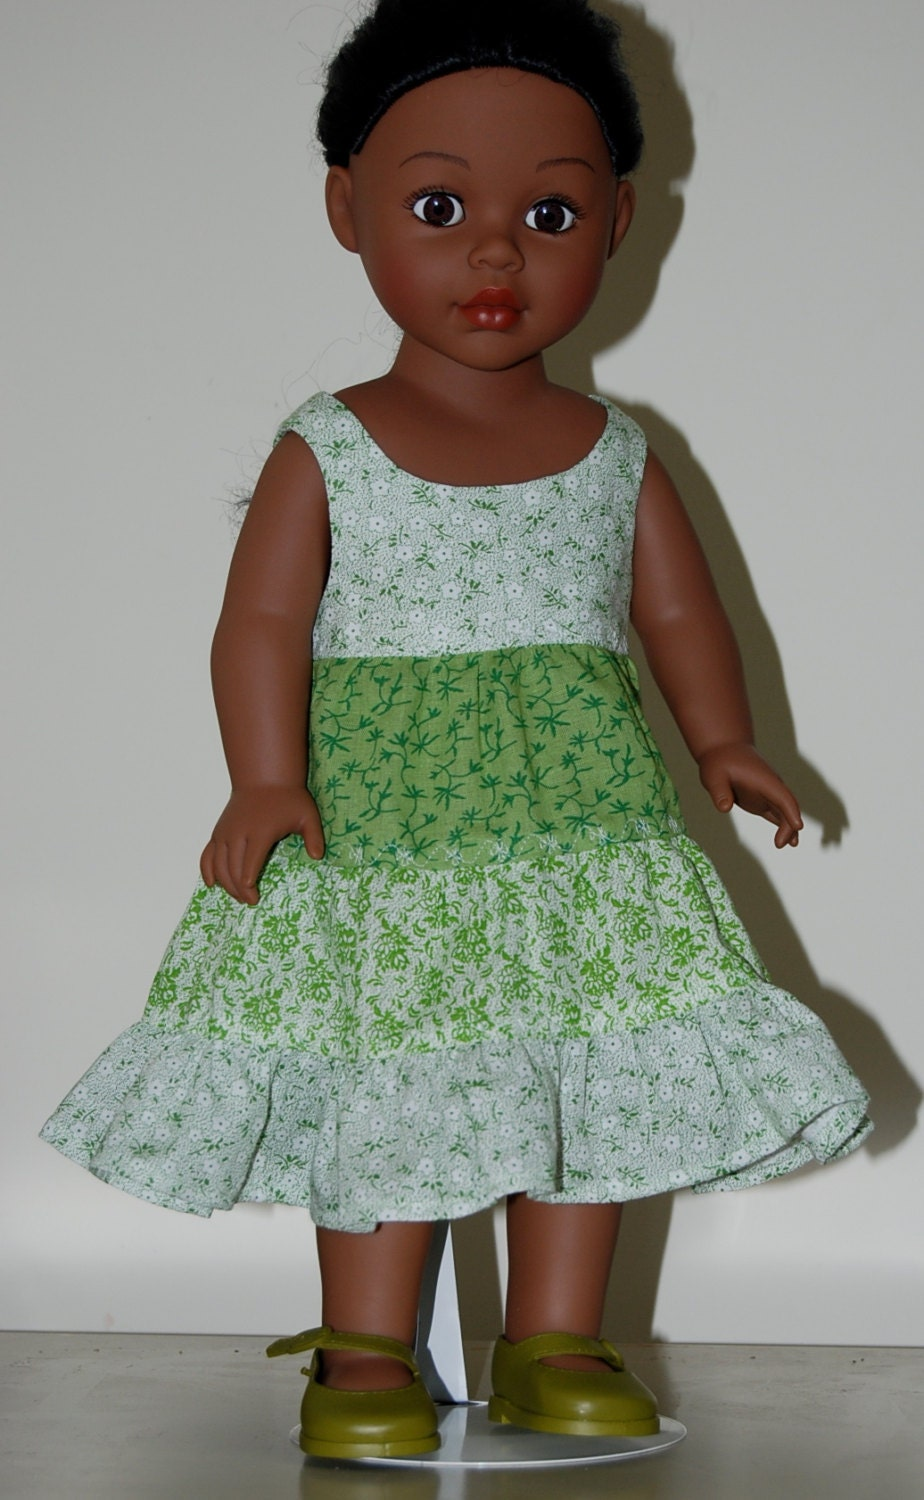 Doll Clothes Patterns By Valspierssews Review Of American: 18 Inch Doll Clothes Twirl Dress By NammysCloset On Etsy